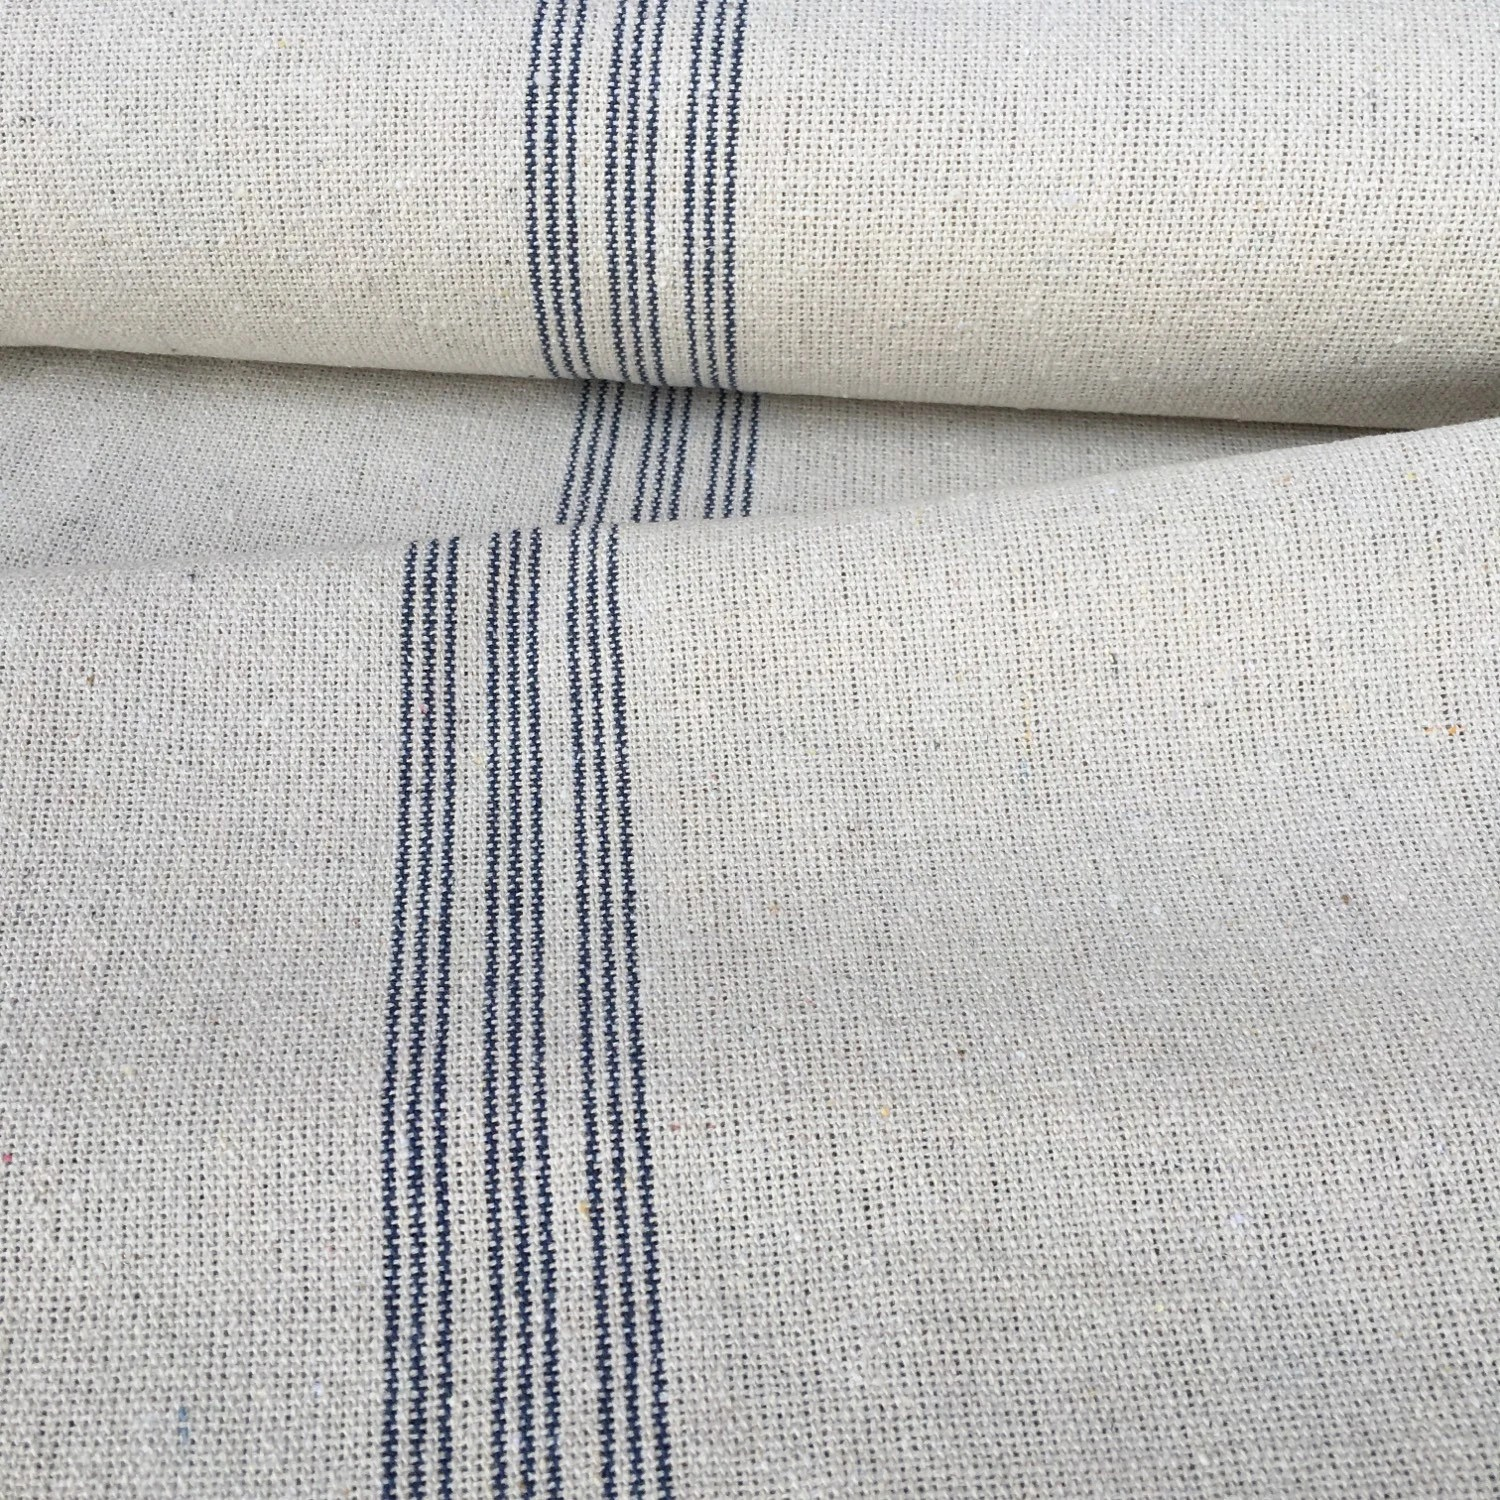 Flour Sack Fabric By The Yard Grain Sack Fabric Blue Stripe Vintage Inspired By